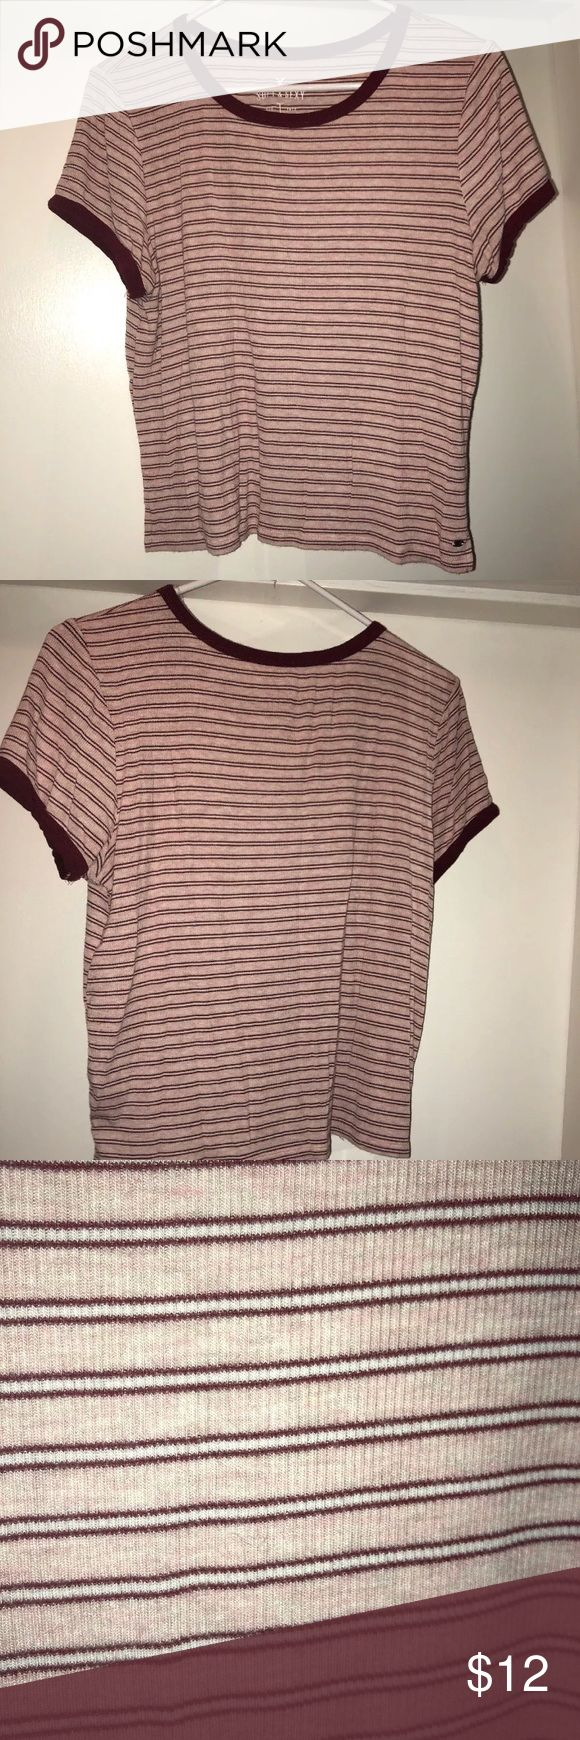 American eagle shirt size large This item has only been worn a few times and it is in great condition! It is super soft and comfortable. American Eagle Outfitters Tops Tees - Short Sleeve